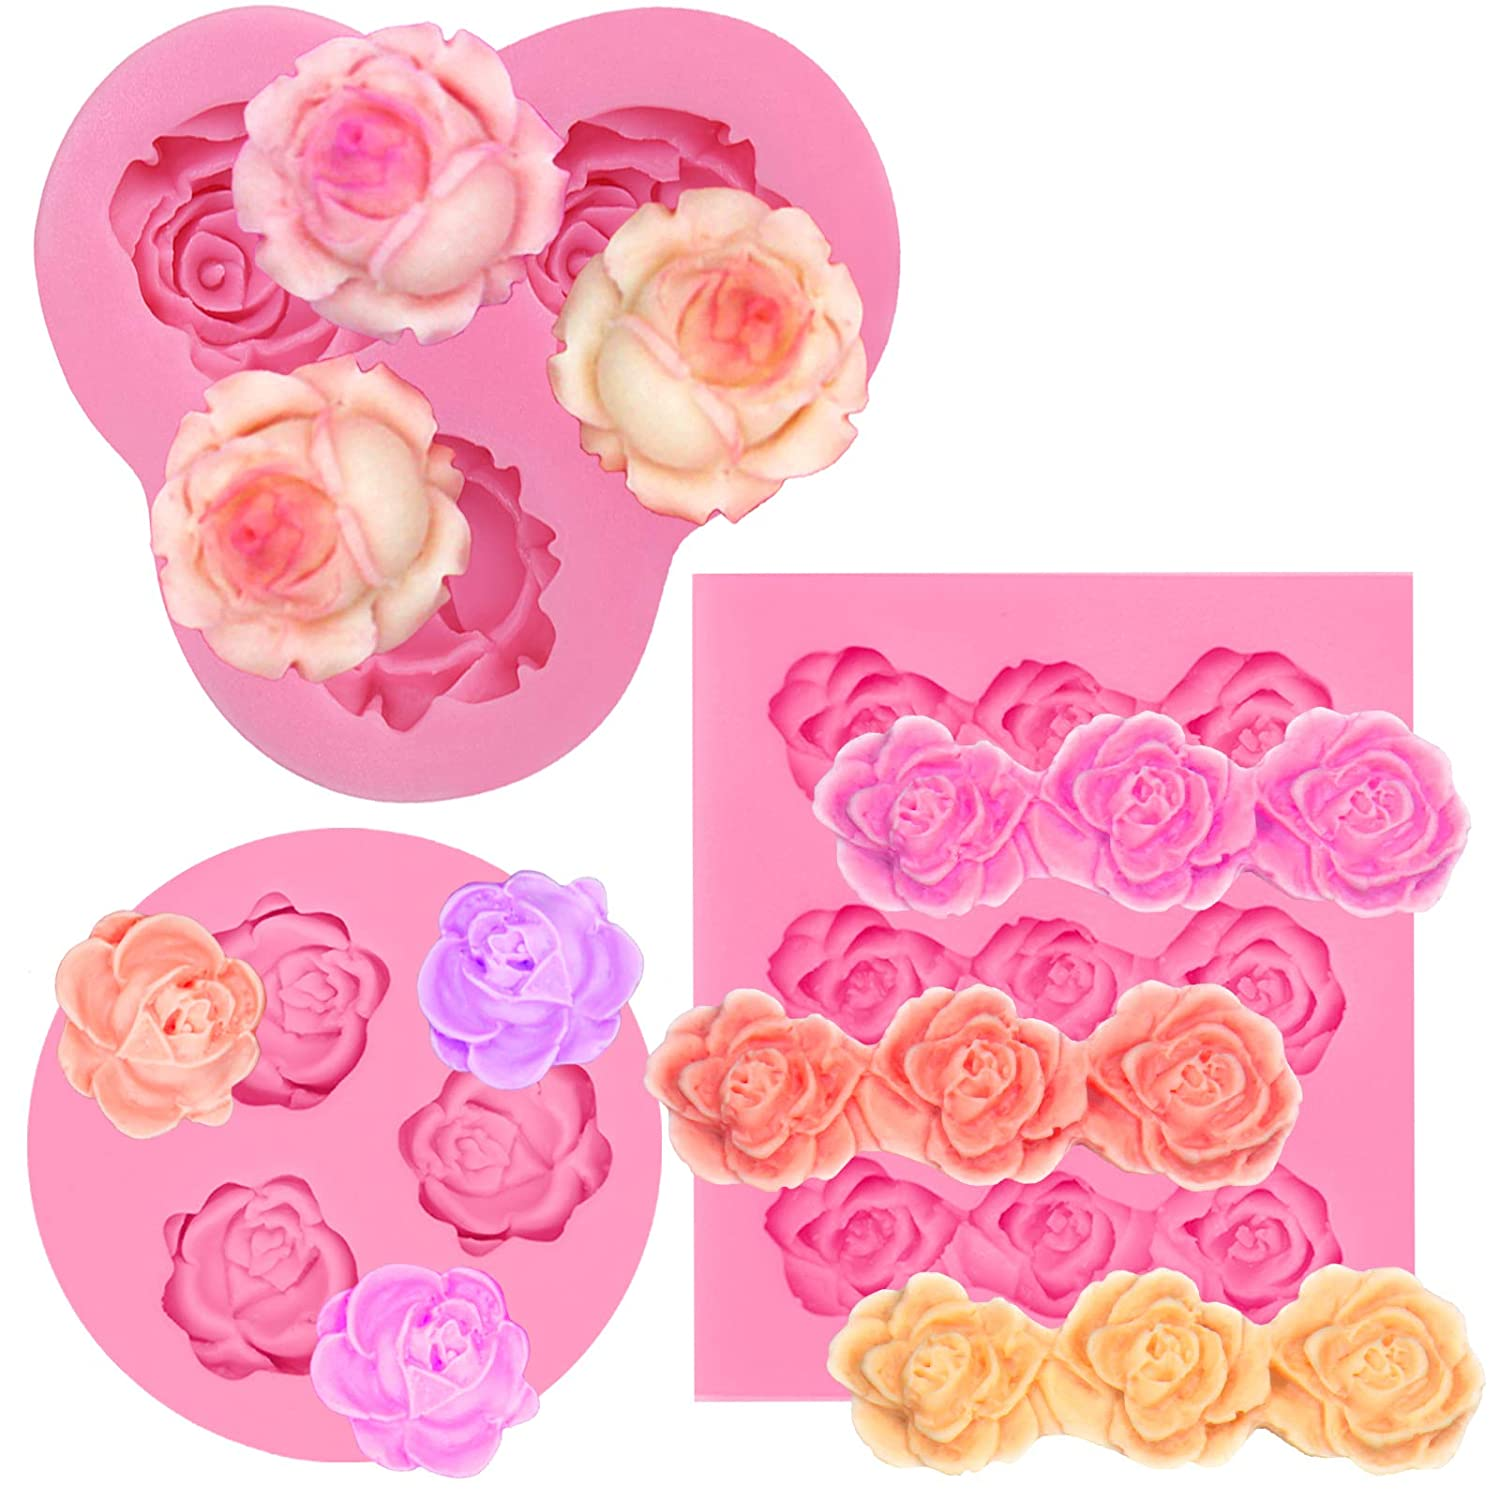 Funshowcase Assorted Sizes Roses Fondant Candy Silicone Mold for Sugarcraft Cake Decoration, Cupcake Topper, Polymer Clay, Soap Wax Making Crafting Projects, 3 Count 66 1085 1462